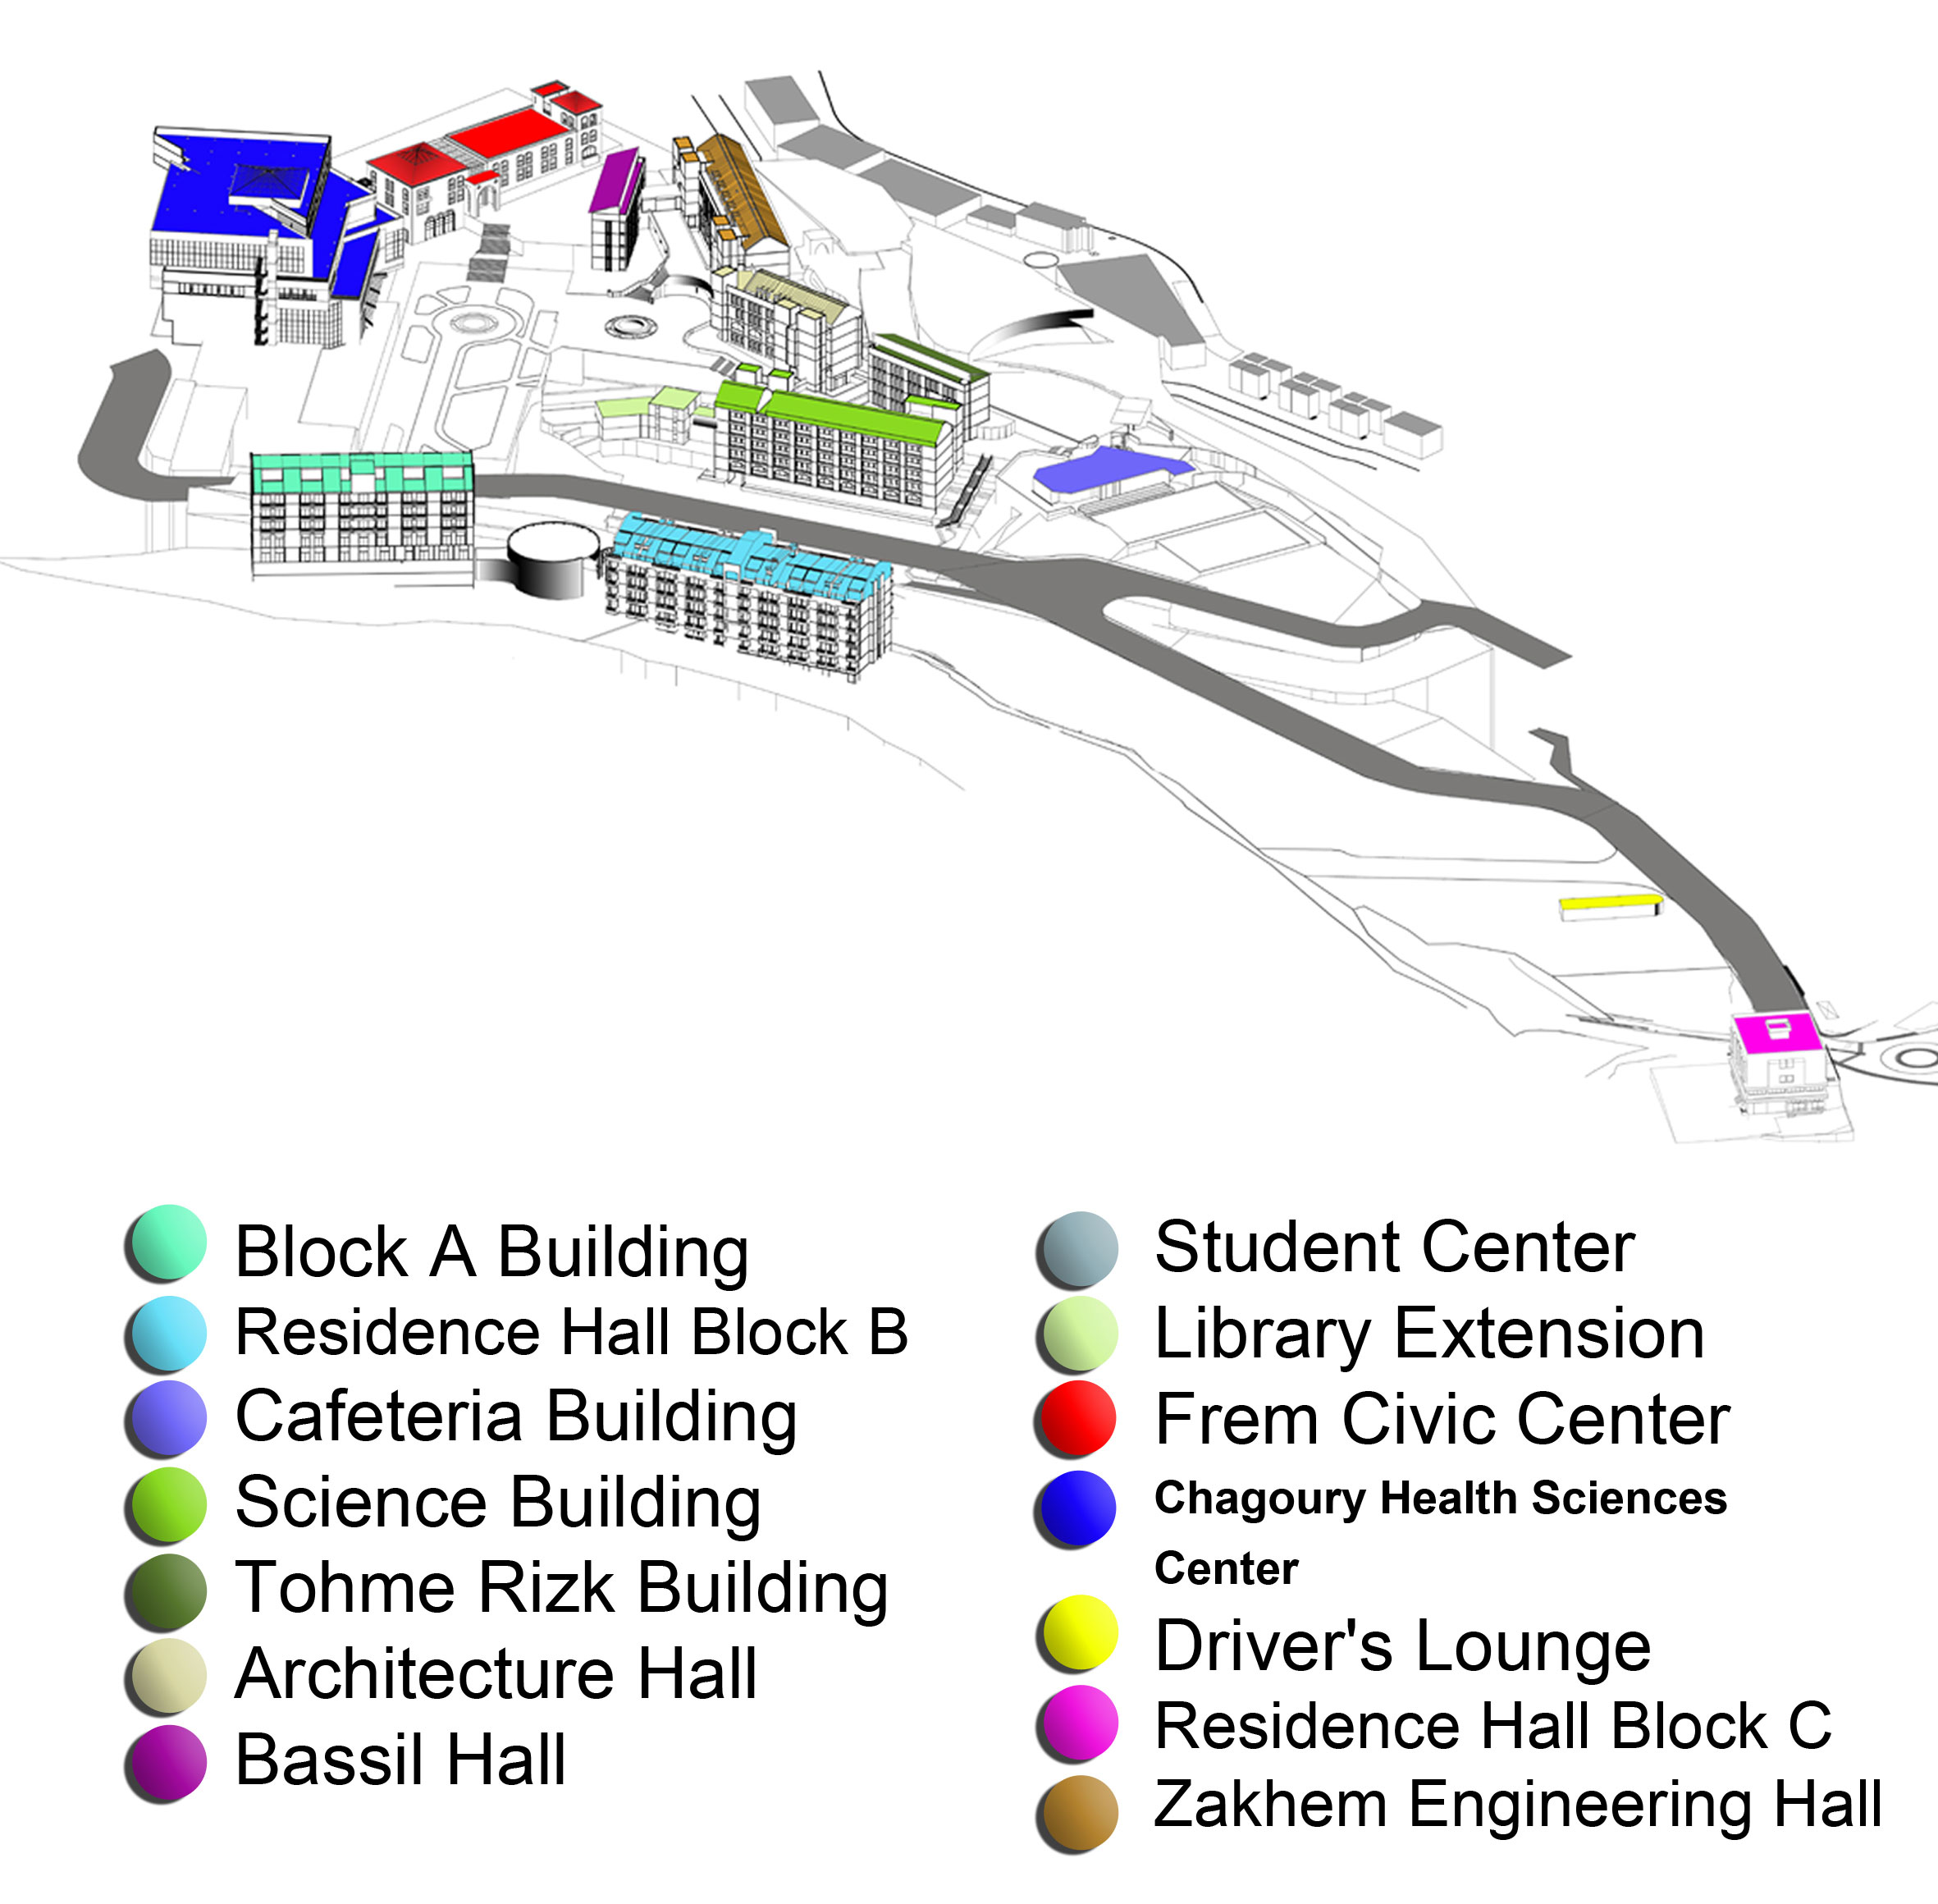 Byblos Campus — Academic Catalog 2015–2016 — Lebanese ... on map of harvey mudd college, map of regis college, history american university, map of assumption college, map of city college of new york, map of college of the holy cross, map of american association, map of arboretum, map of brevard college, map of american culture, map of wartburg college, map of embry riddle, map of american country, map of saint anselm college, map of valencia college, map of franklin college, map of columbia college, map of lyon college, map of georgetown law school, map of baltimore city community college,